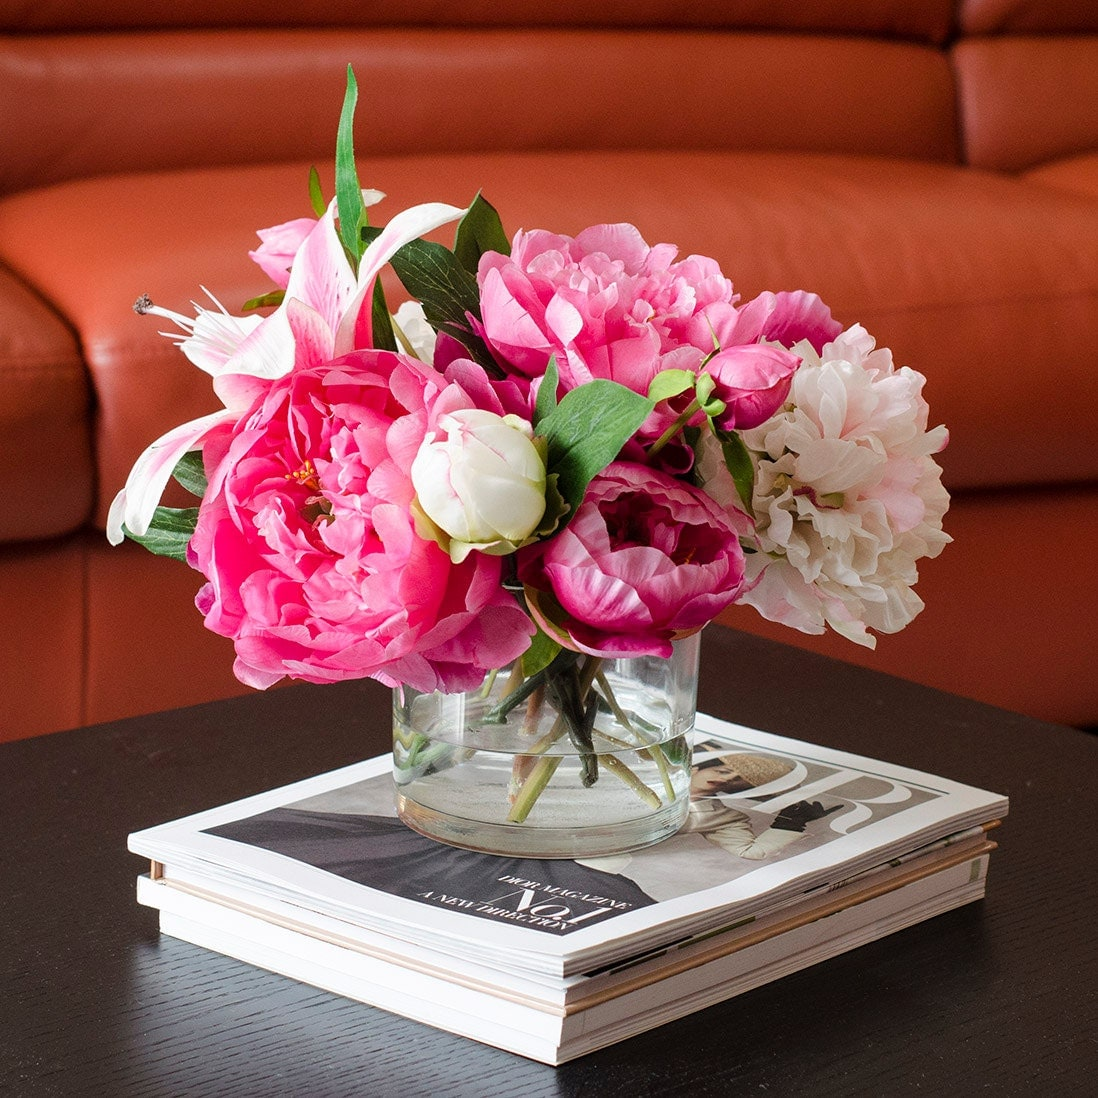 Large Silk Peonies Arrangement With Casablanca Lily Fuchsia Pink Peonies Silk Flowers Artificial Faux In Glass